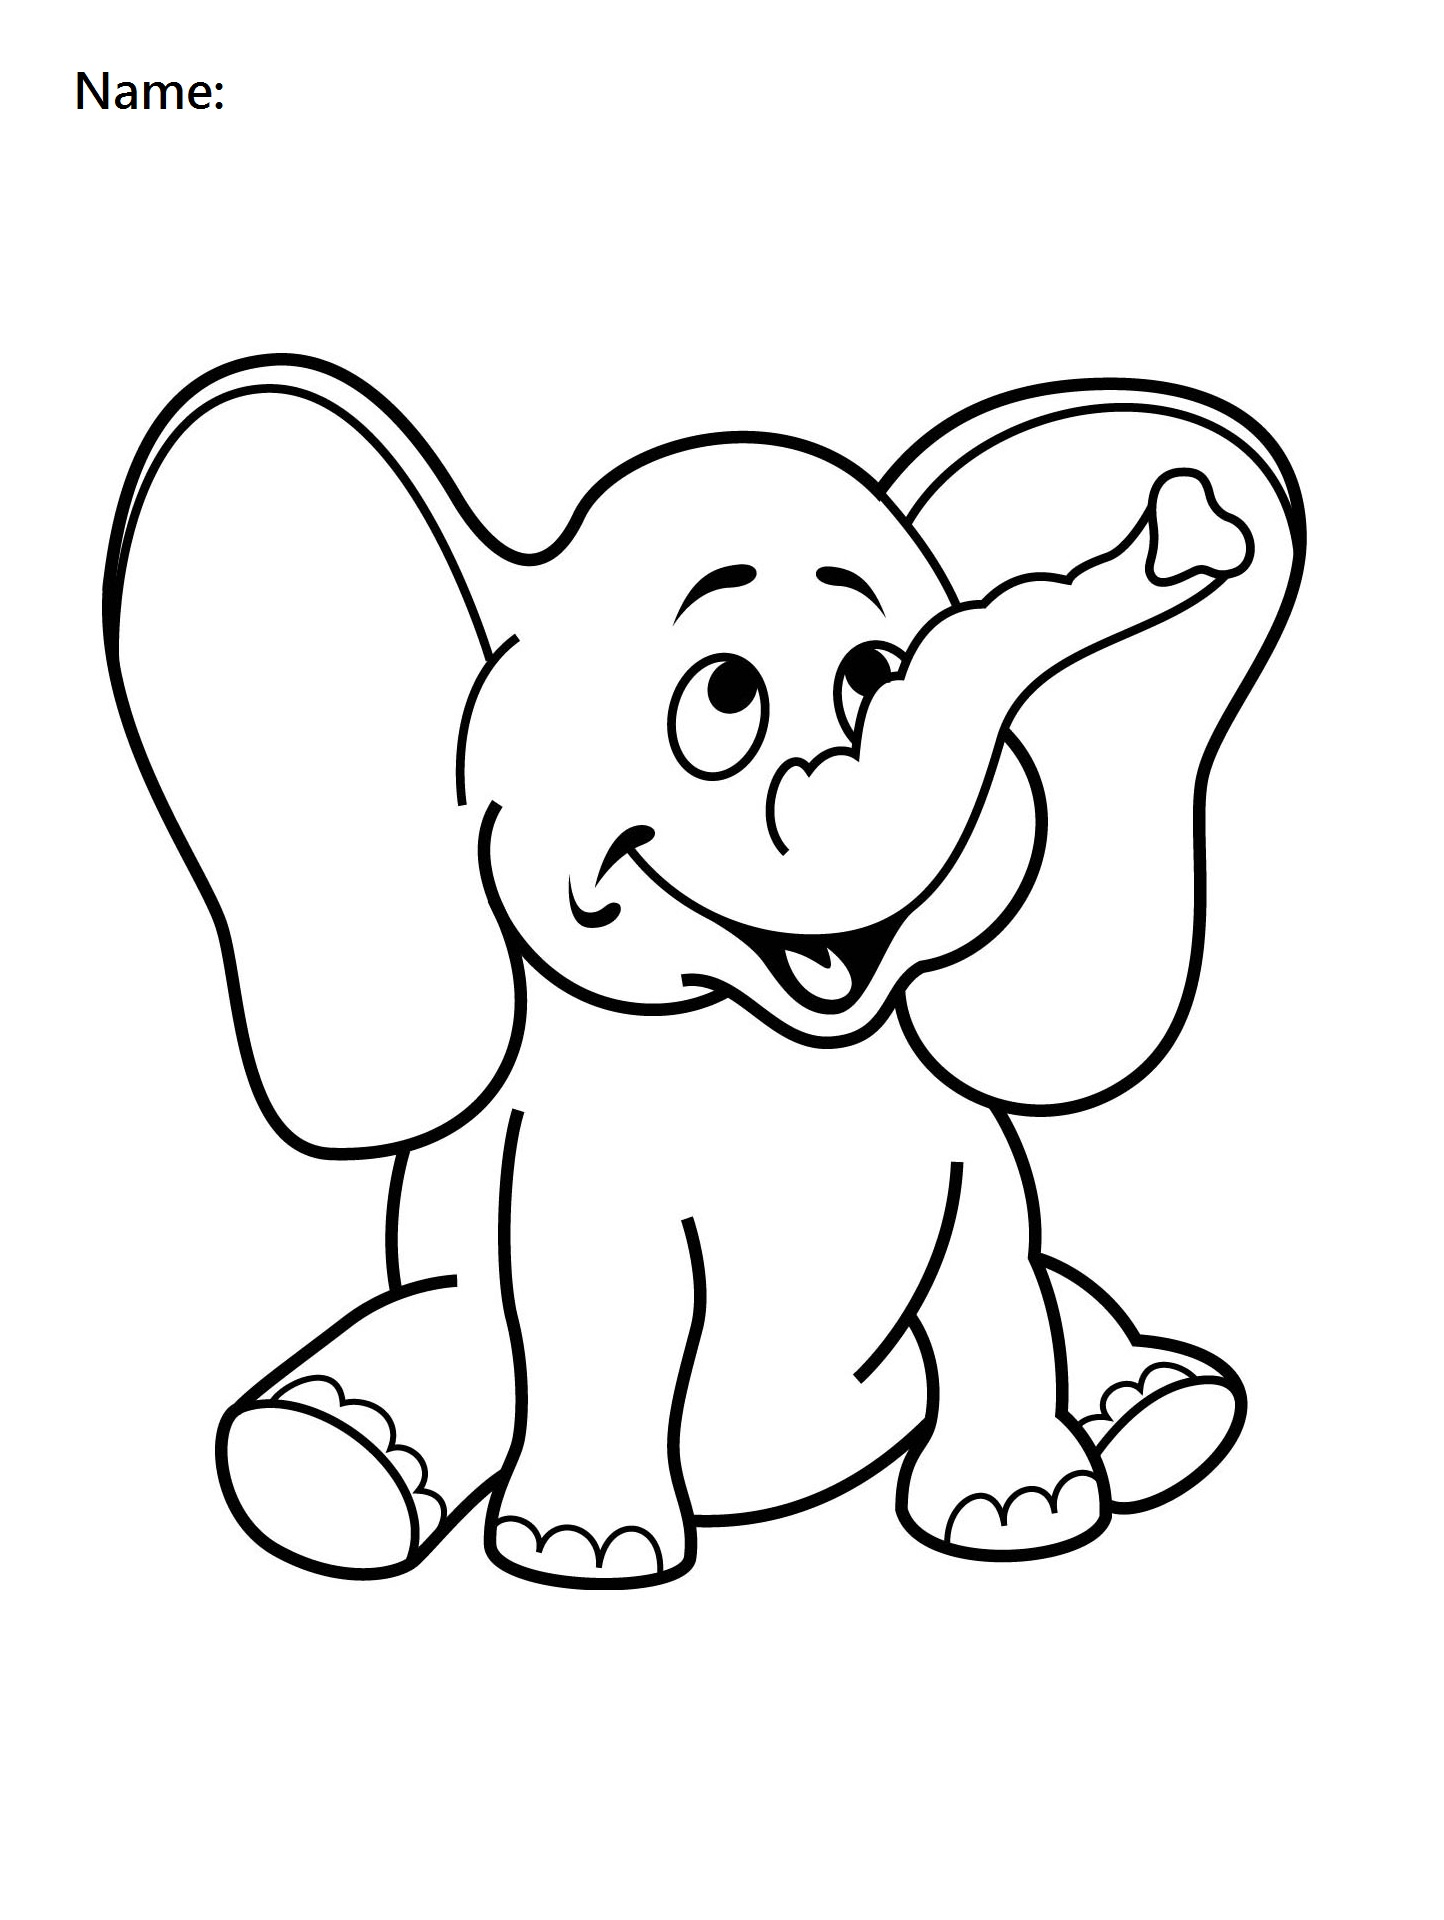 free coloring pages for 4 year olds 4 year old coloring pages free printable 4 year old year coloring pages free 4 olds for